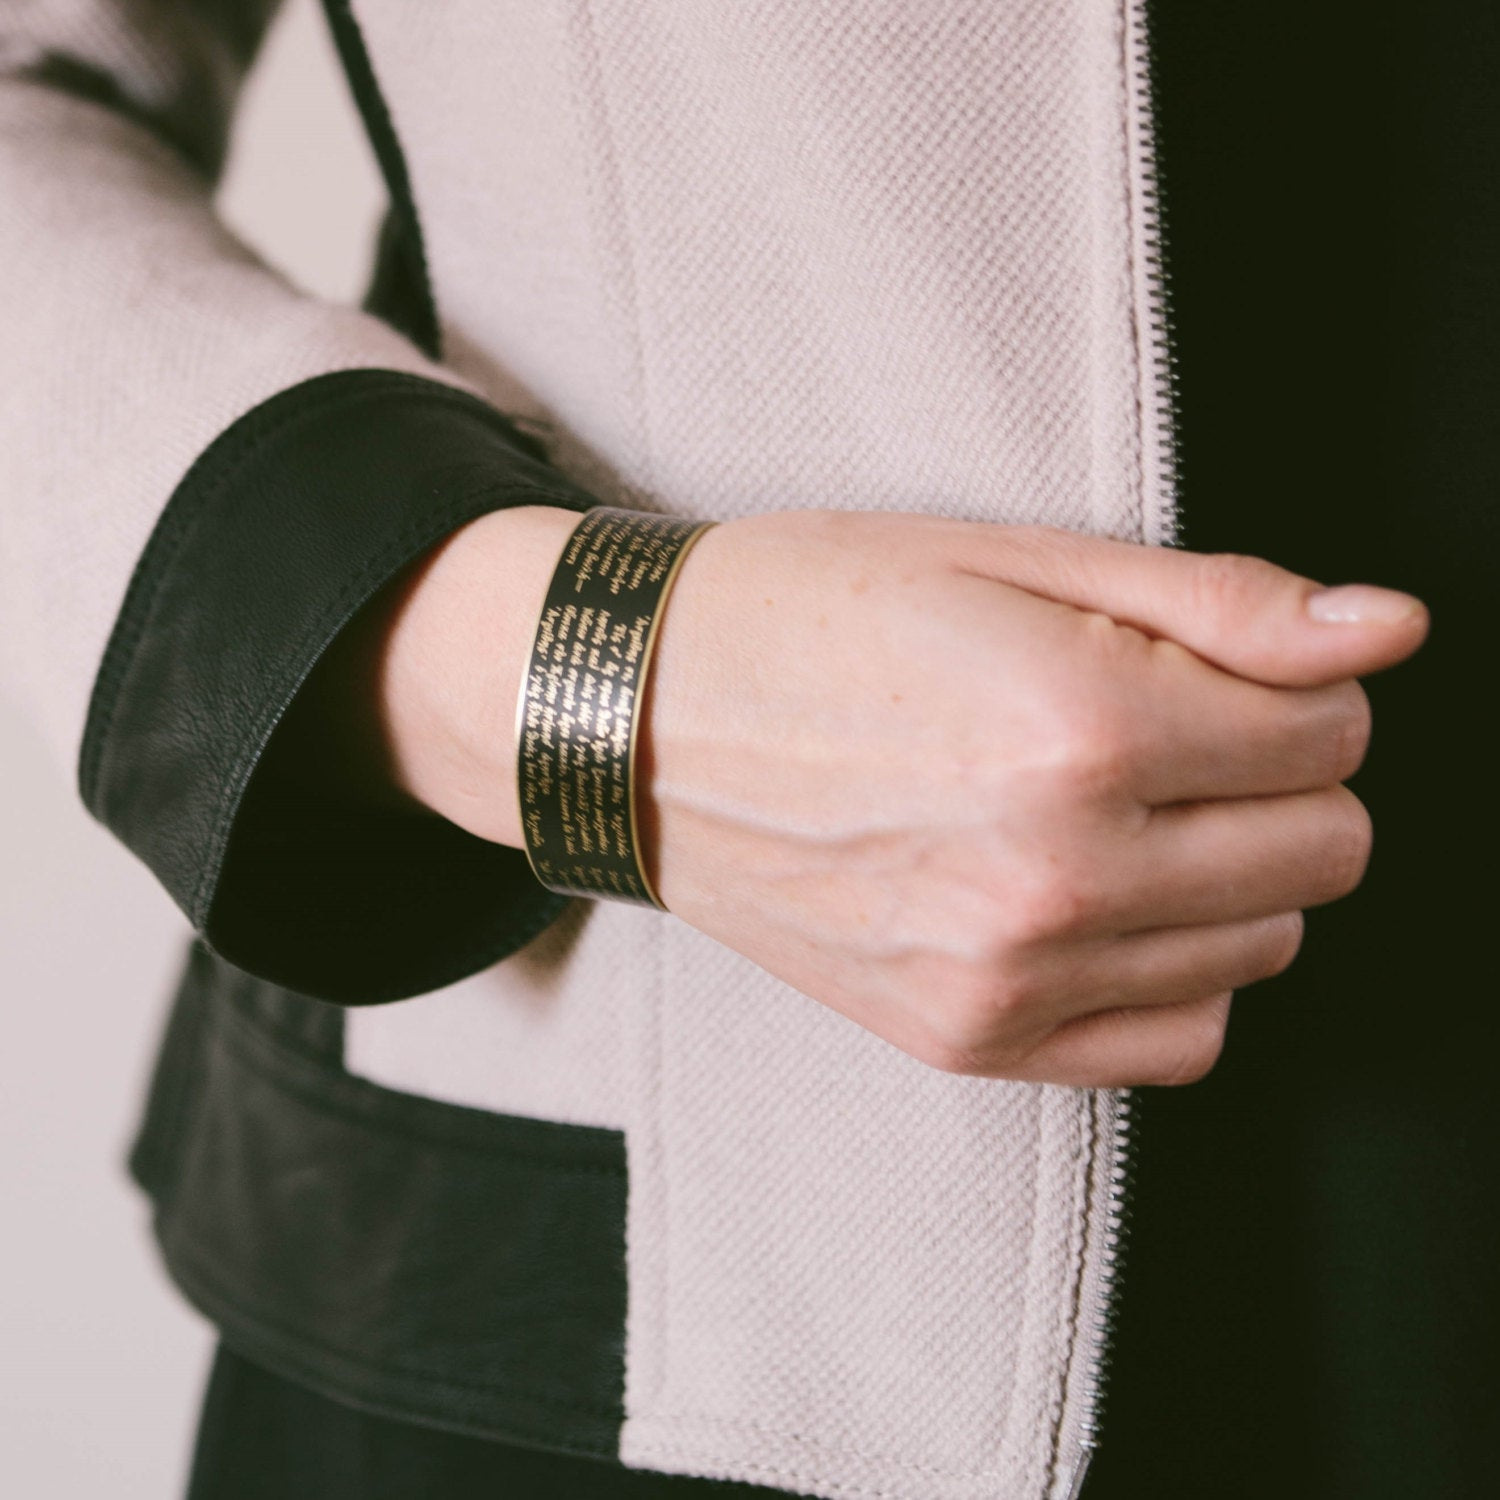 Homer's The Iliad Cuff Bracelet